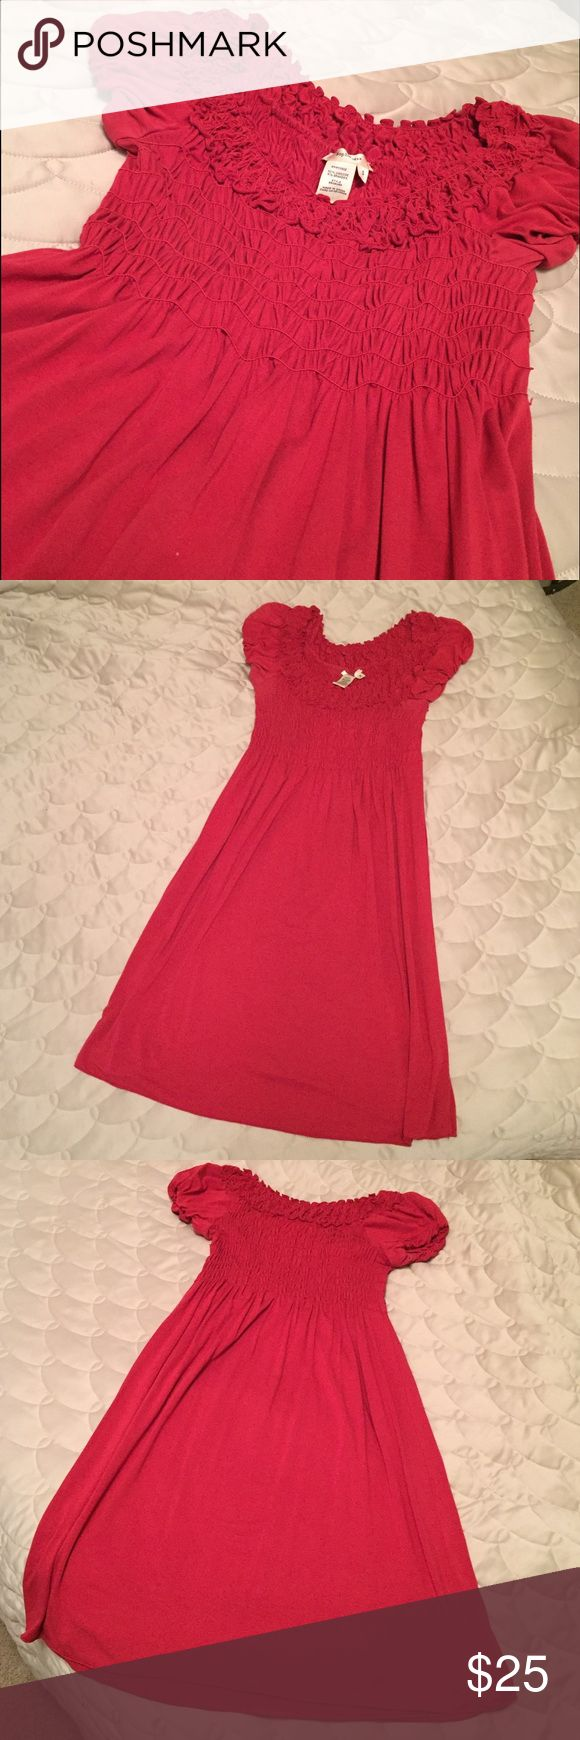 Sophie Max Dress This Sophie Max Dress is size small in a rosy pink color. It's soft and comfortable, and there are no defects. I just never wore it enough. Great for church or special events! Sophie Max Dresses Midi